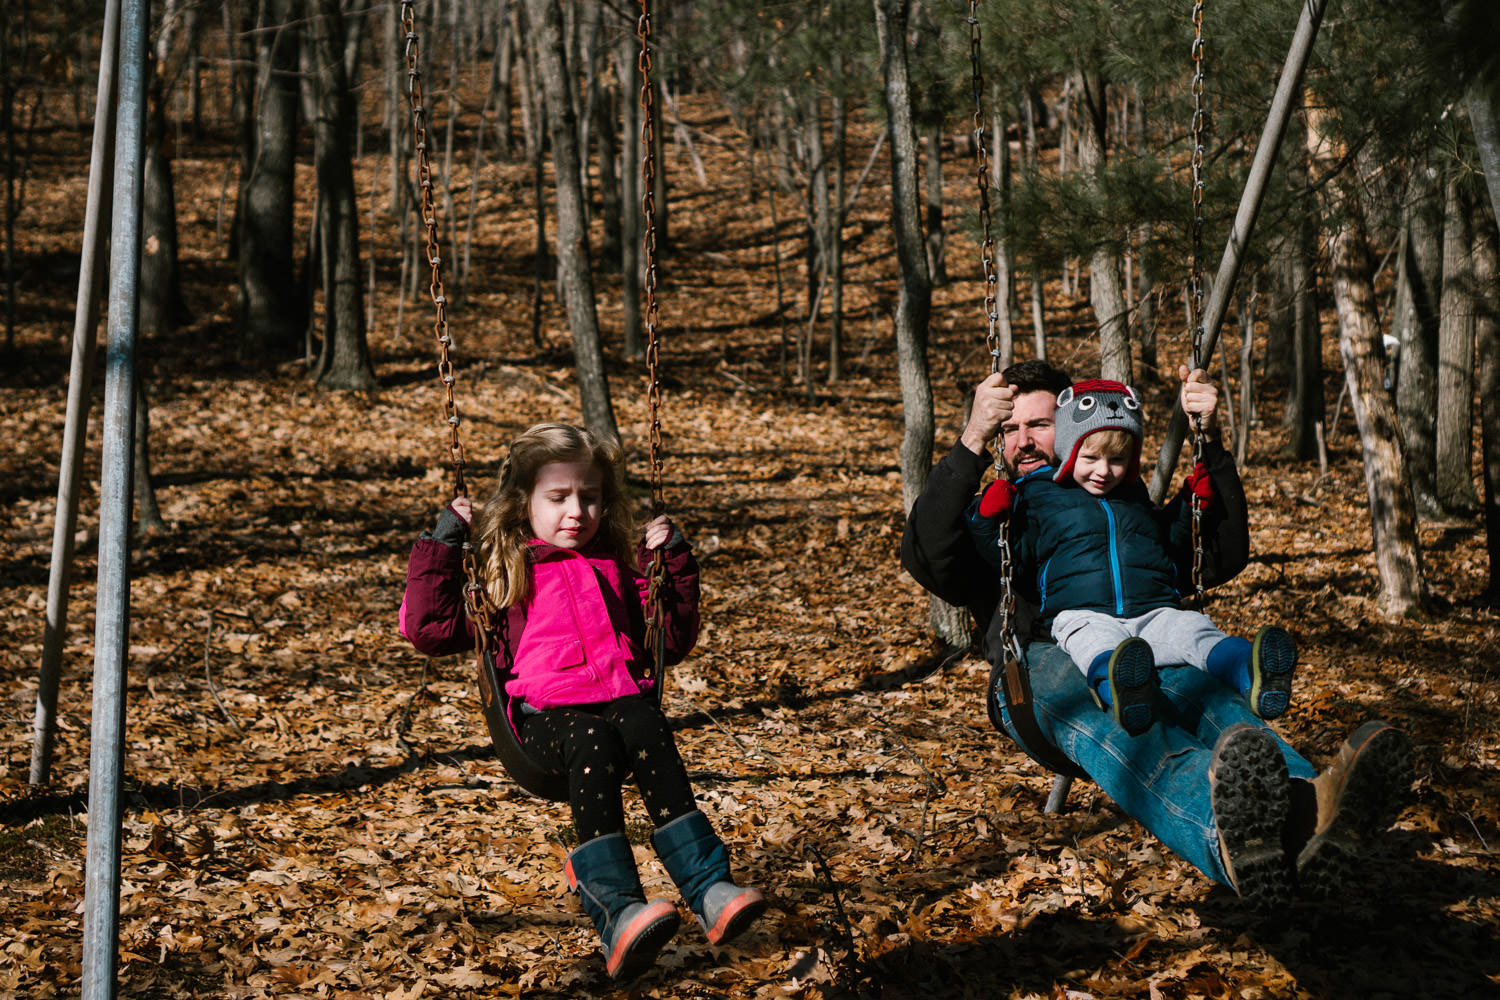 A family swings on a swingset in the woods.